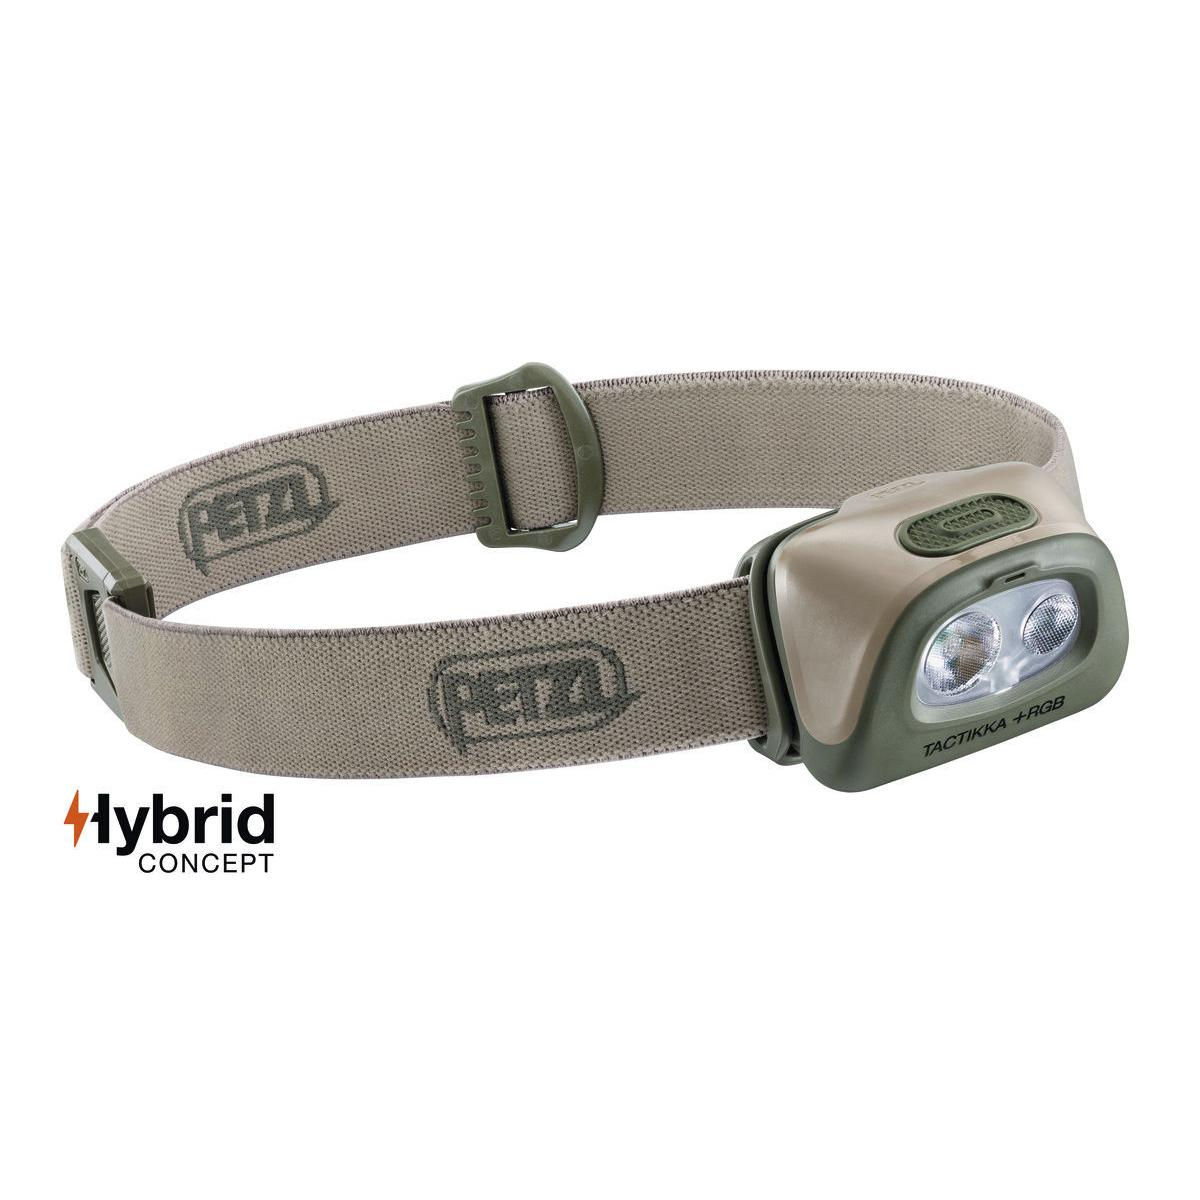 Petzl TACTIKKA+ RGB 350 Lumens Headlamp